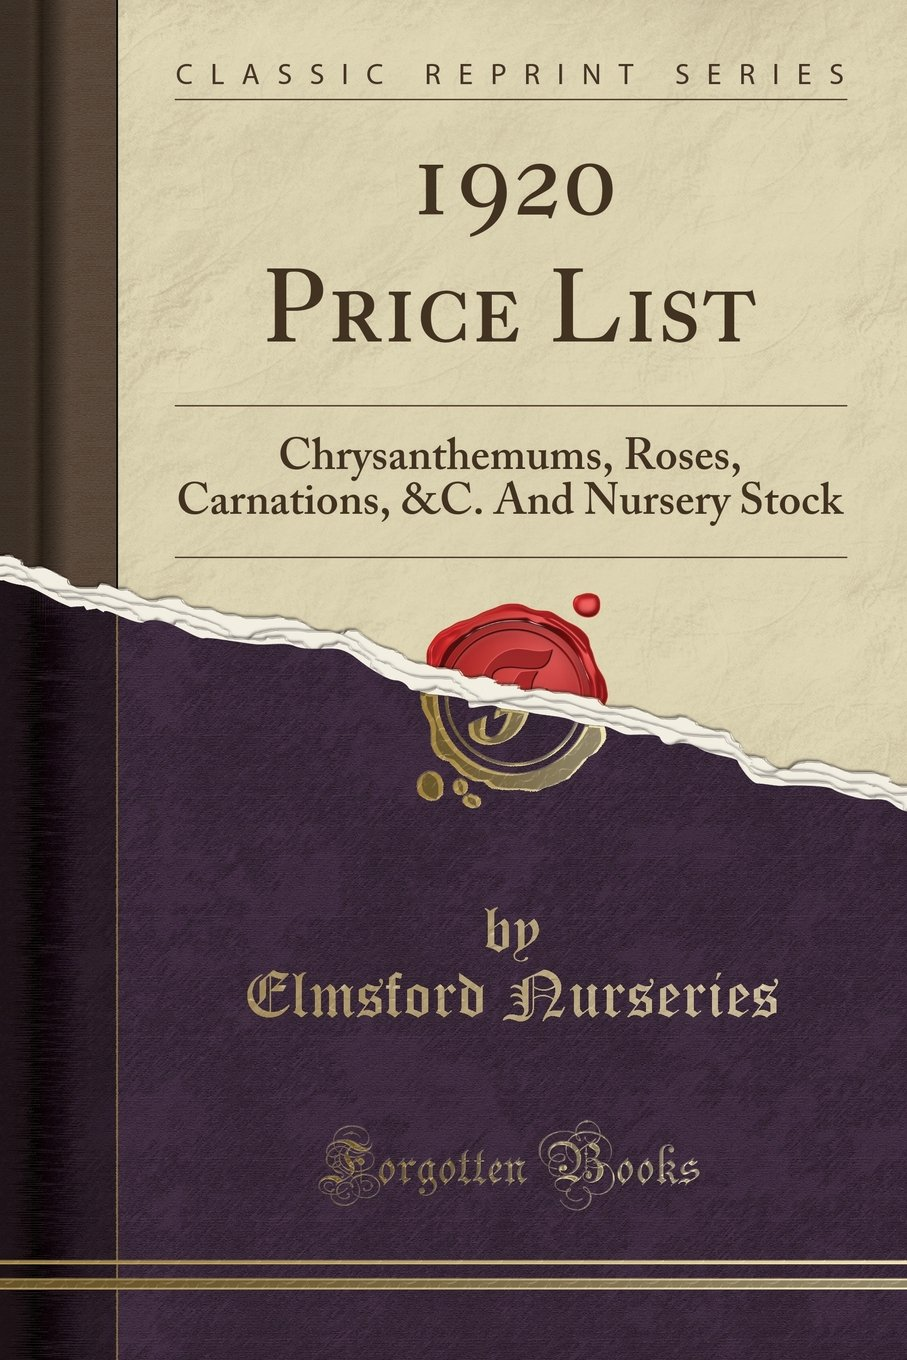 Download 1920 Price List: Chrysanthemums, Roses, Carnations, &C. And Nursery Stock (Classic Reprint) PDF